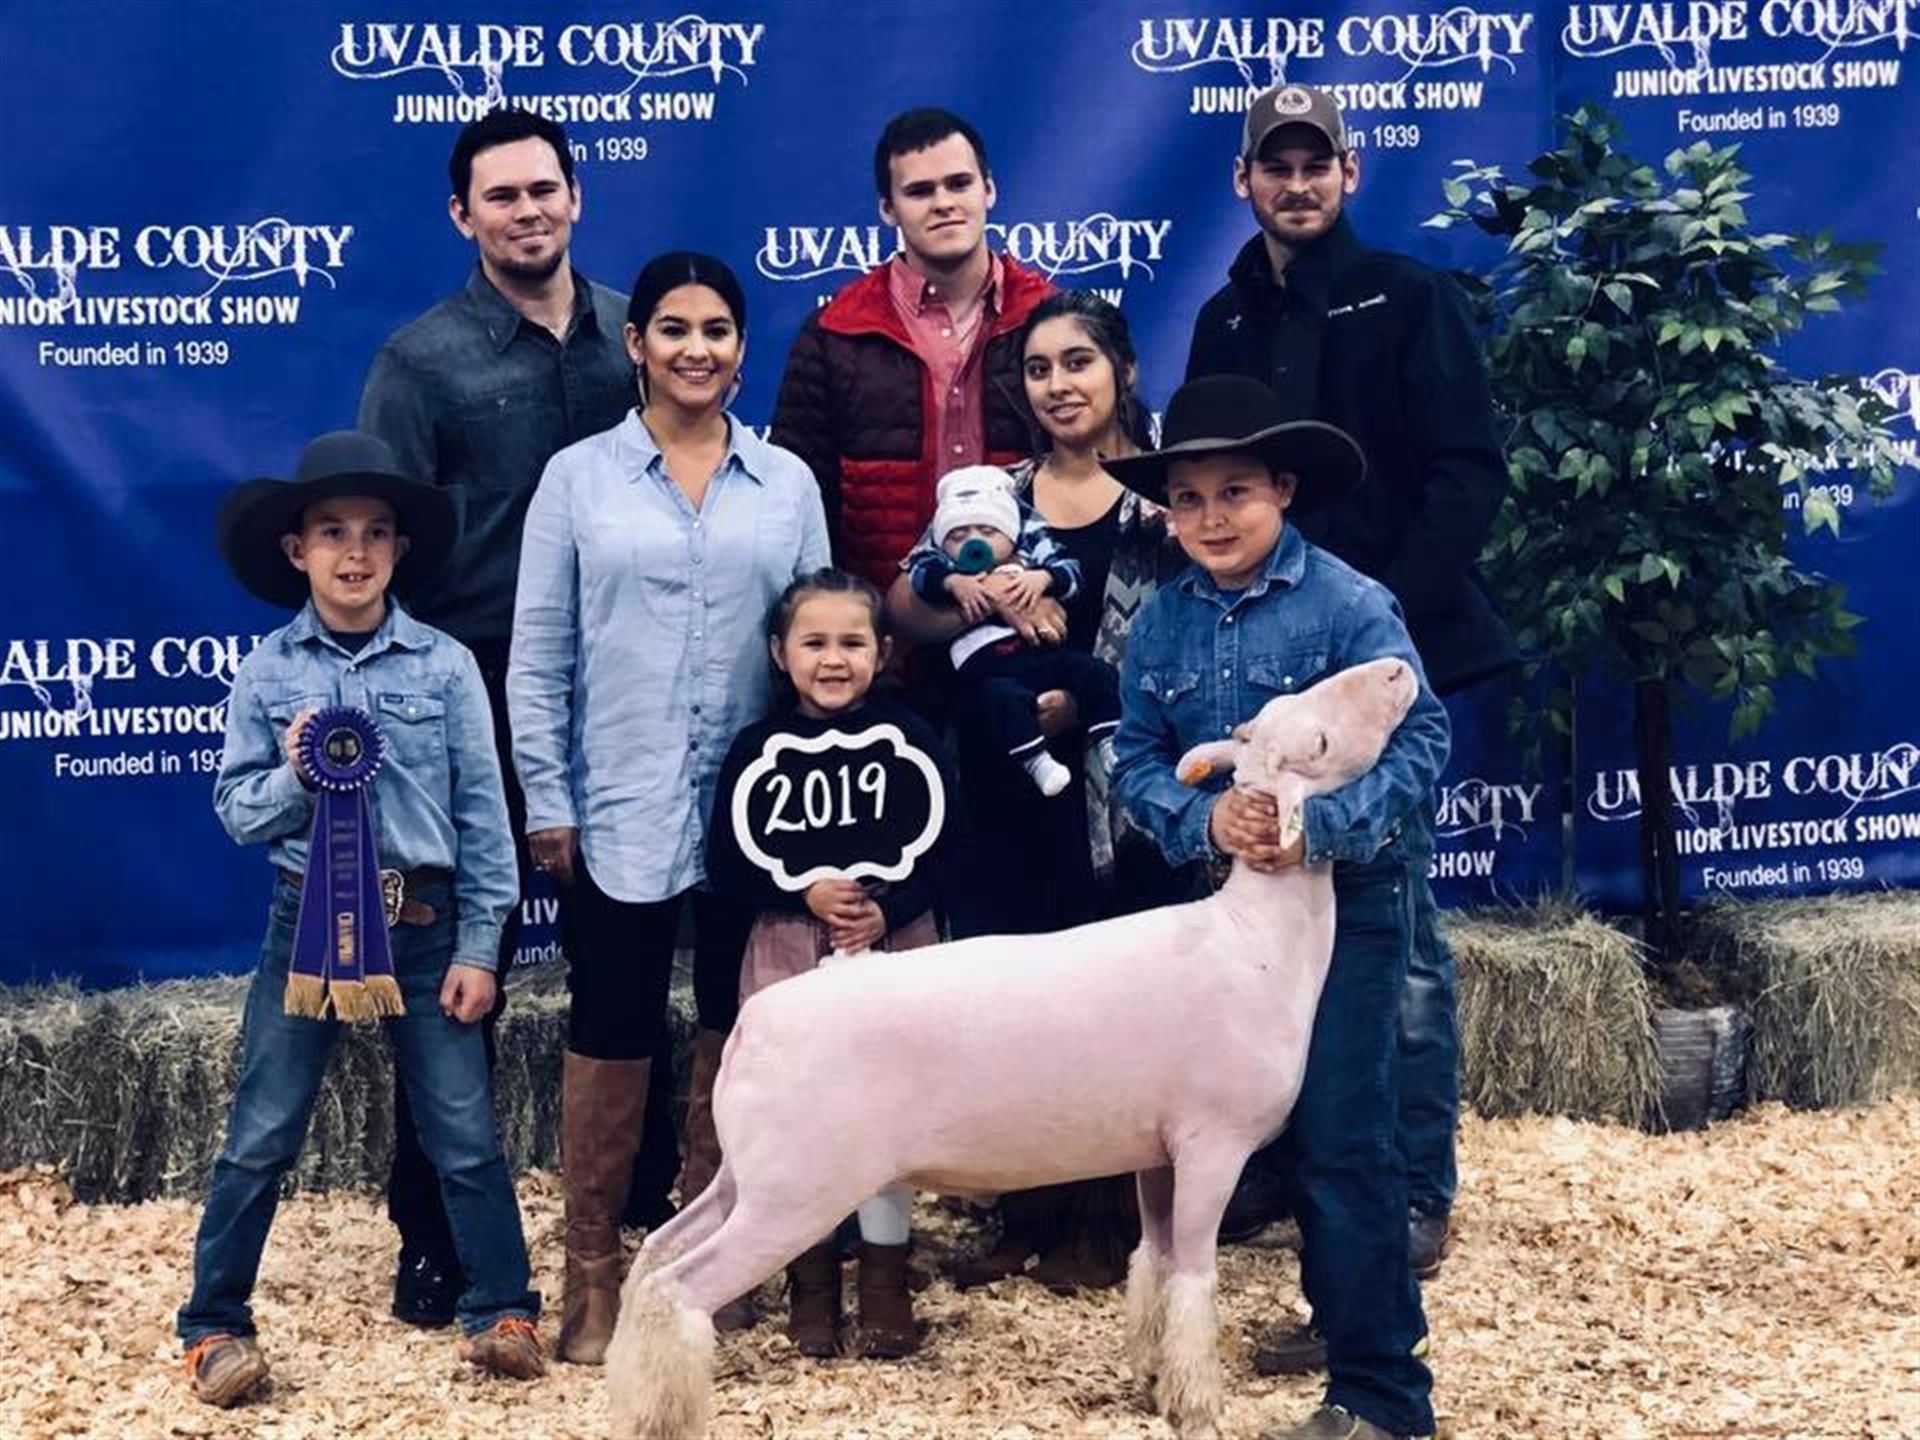 family taking a photo with a goat at the uvalde county junior livestock show founded in 1939